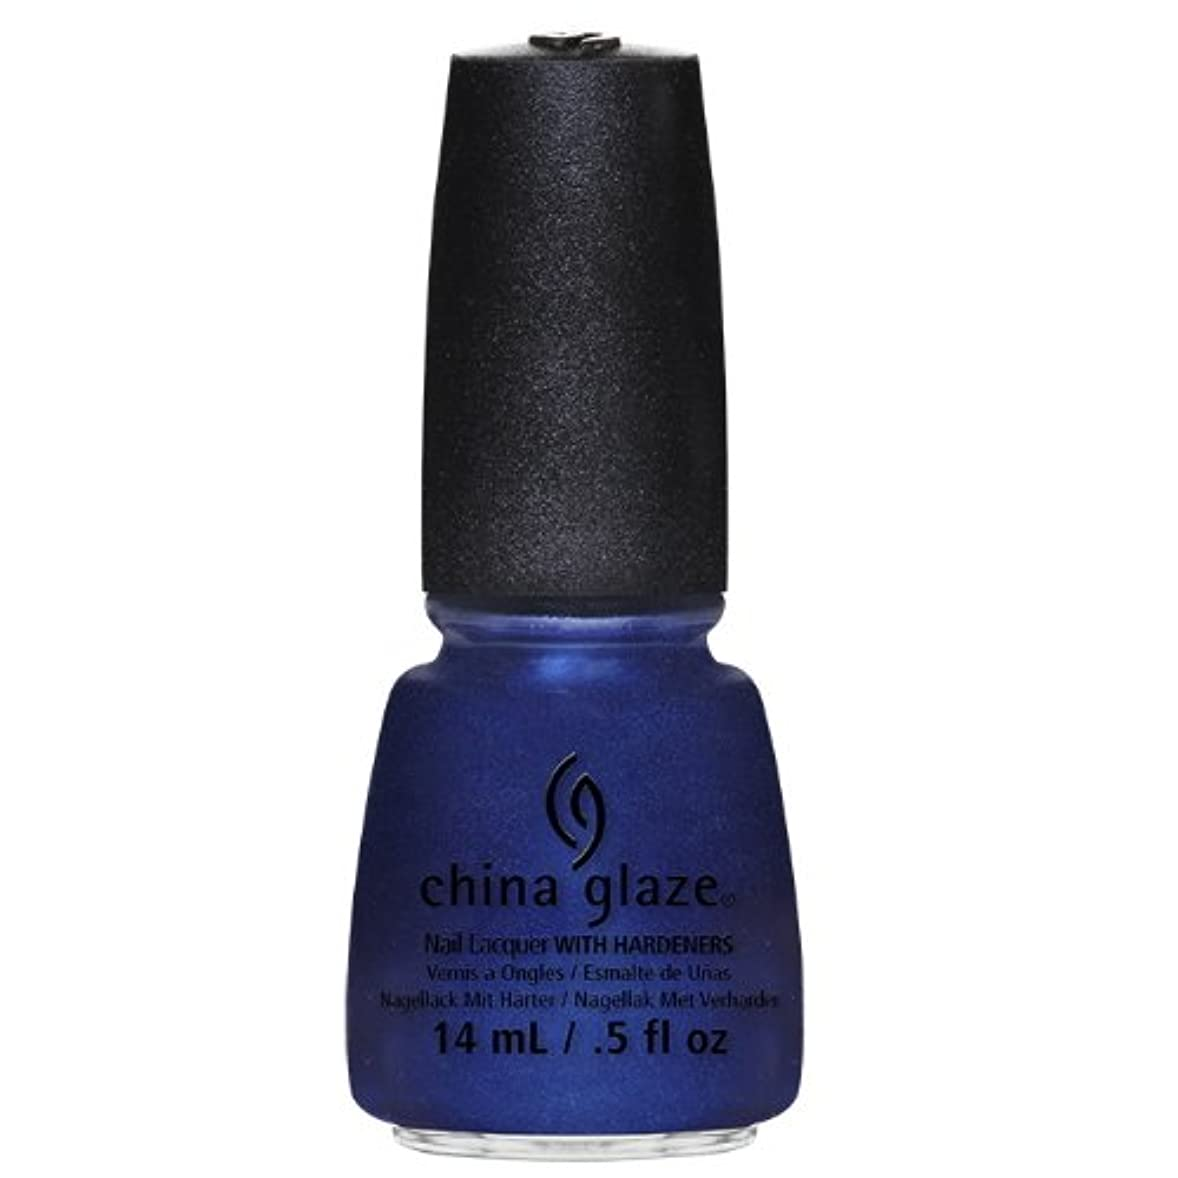 修理工ペネロペトリプル(3 Pack) CHINA GLAZE Nail Lacquer - Autumn Nights - Scandalous Shenanigans (並行輸入品)